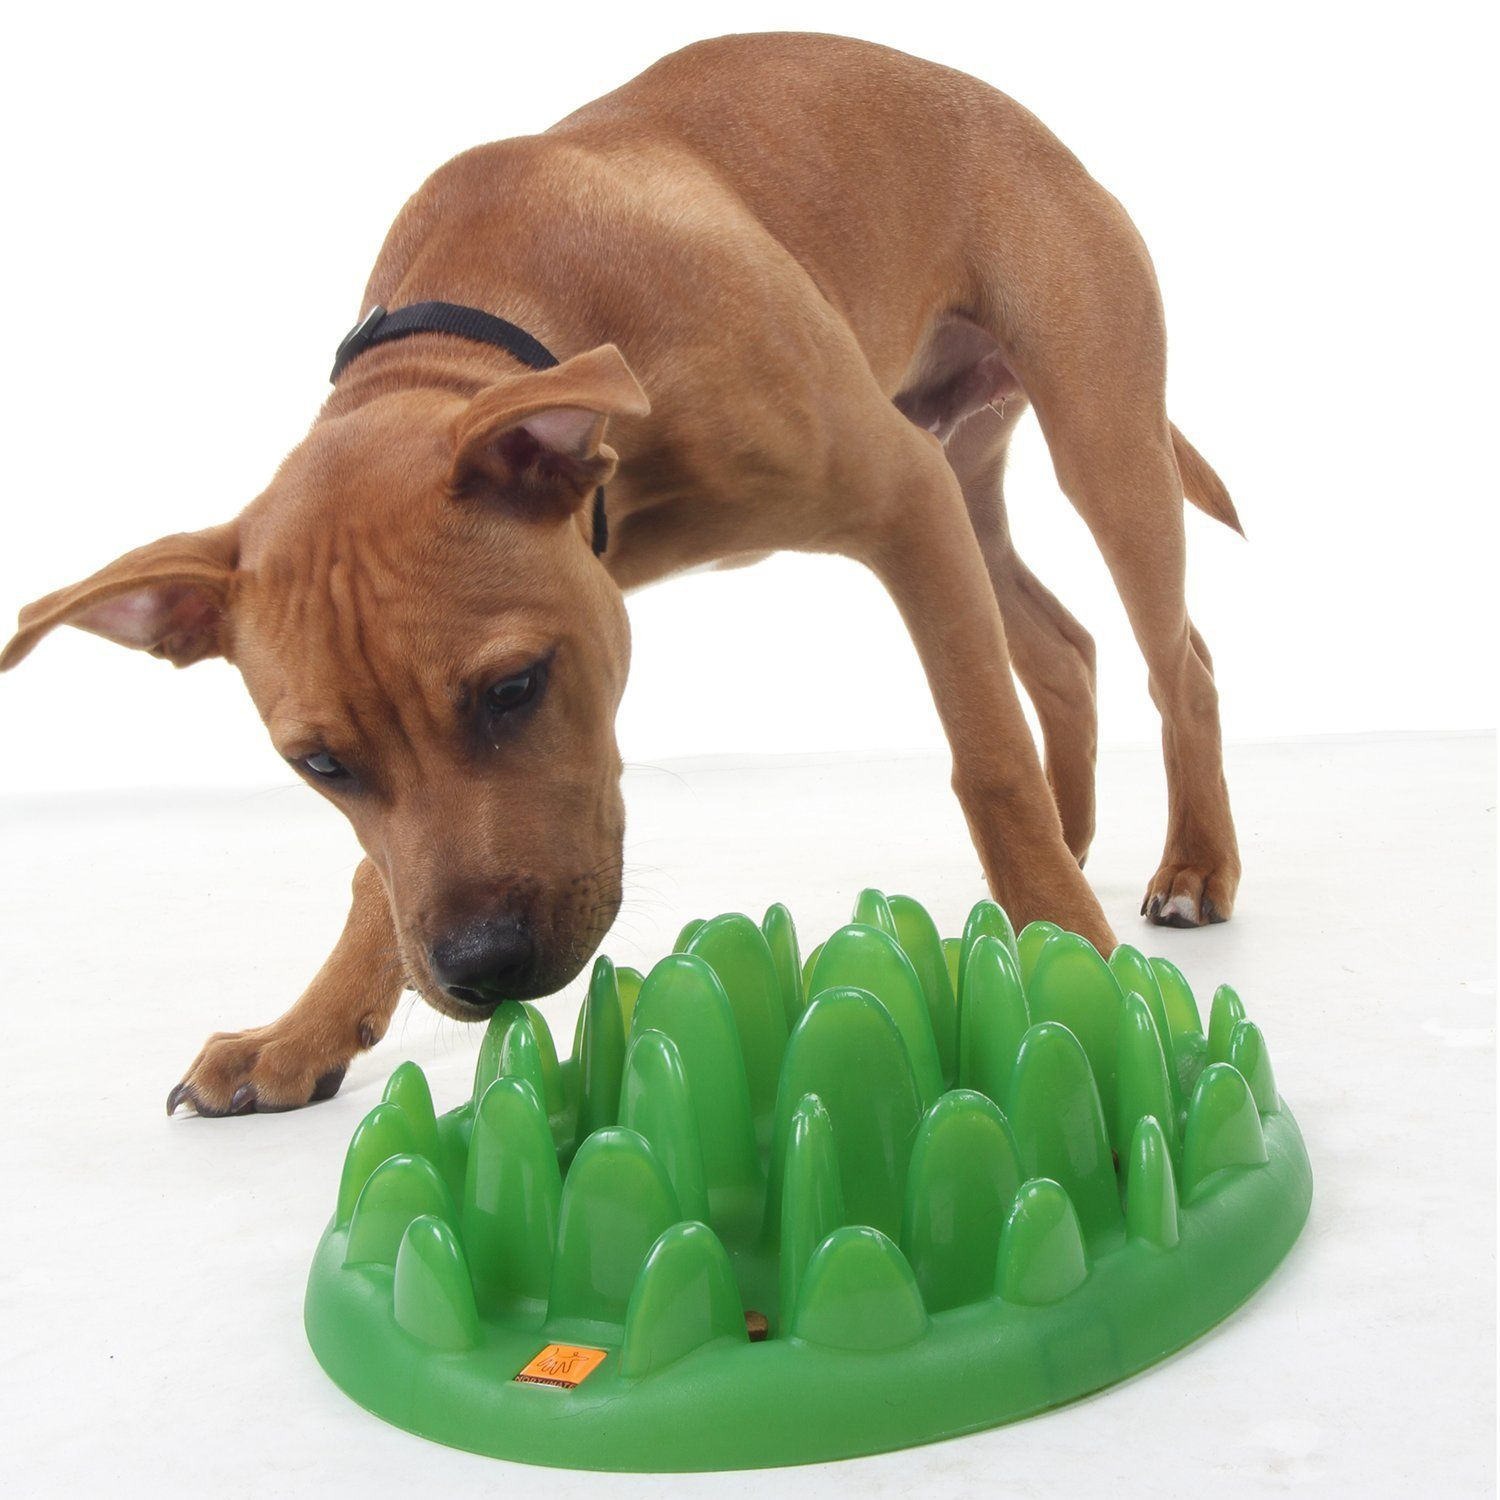 Pupper Pamper Interactive Dog Toy Treat Dispensing Dogs Https